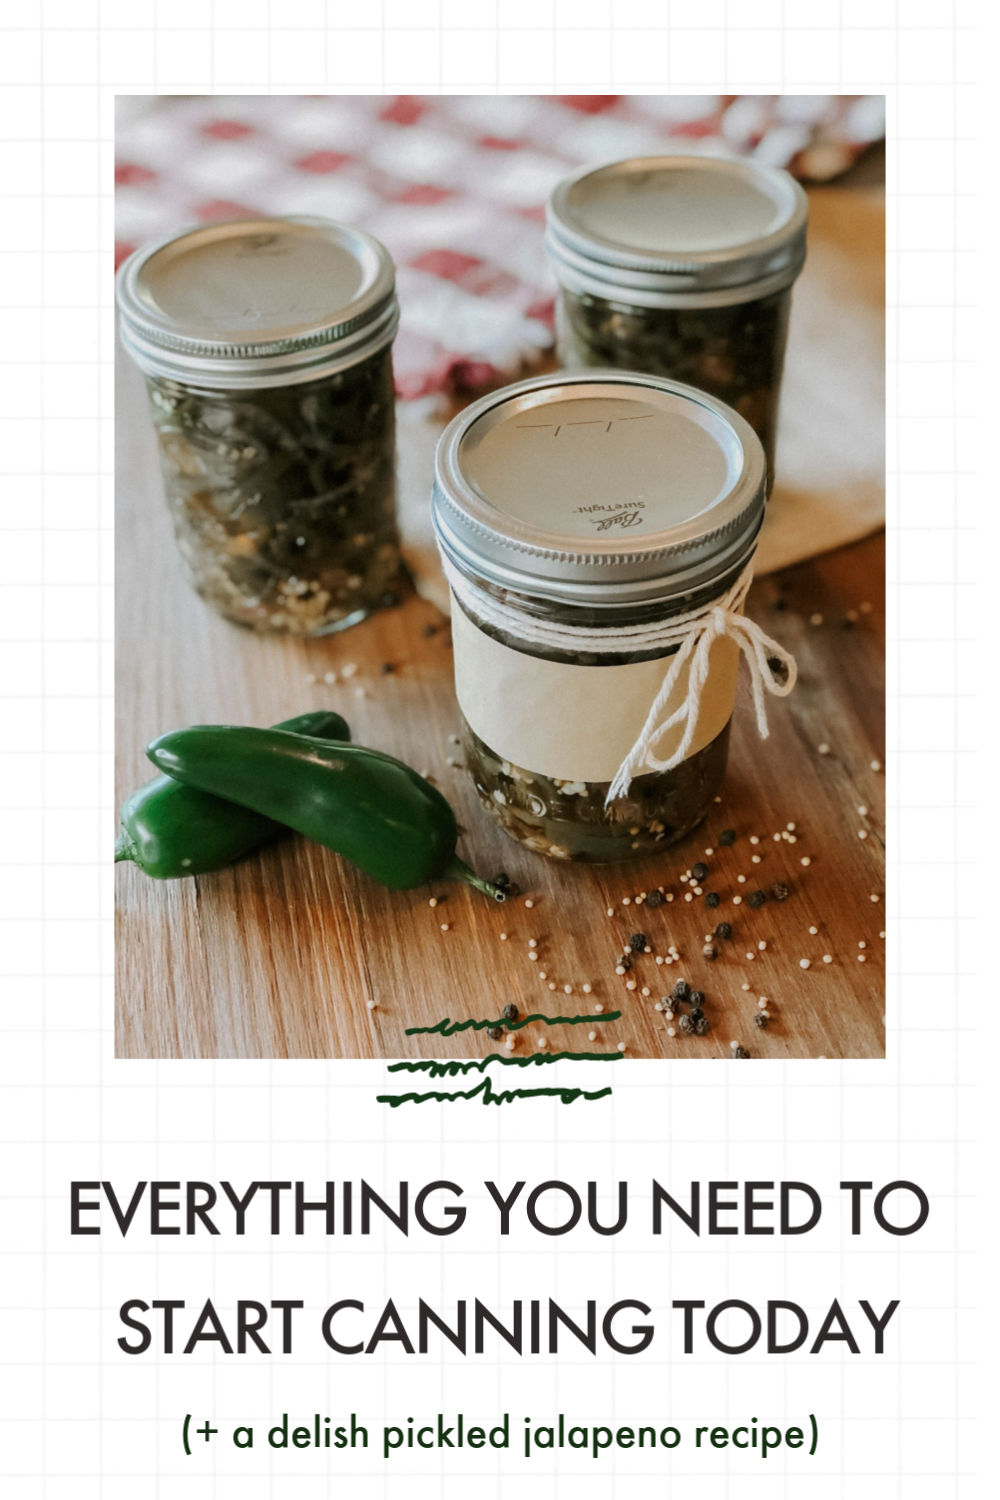 Everything you need to start canning right now.